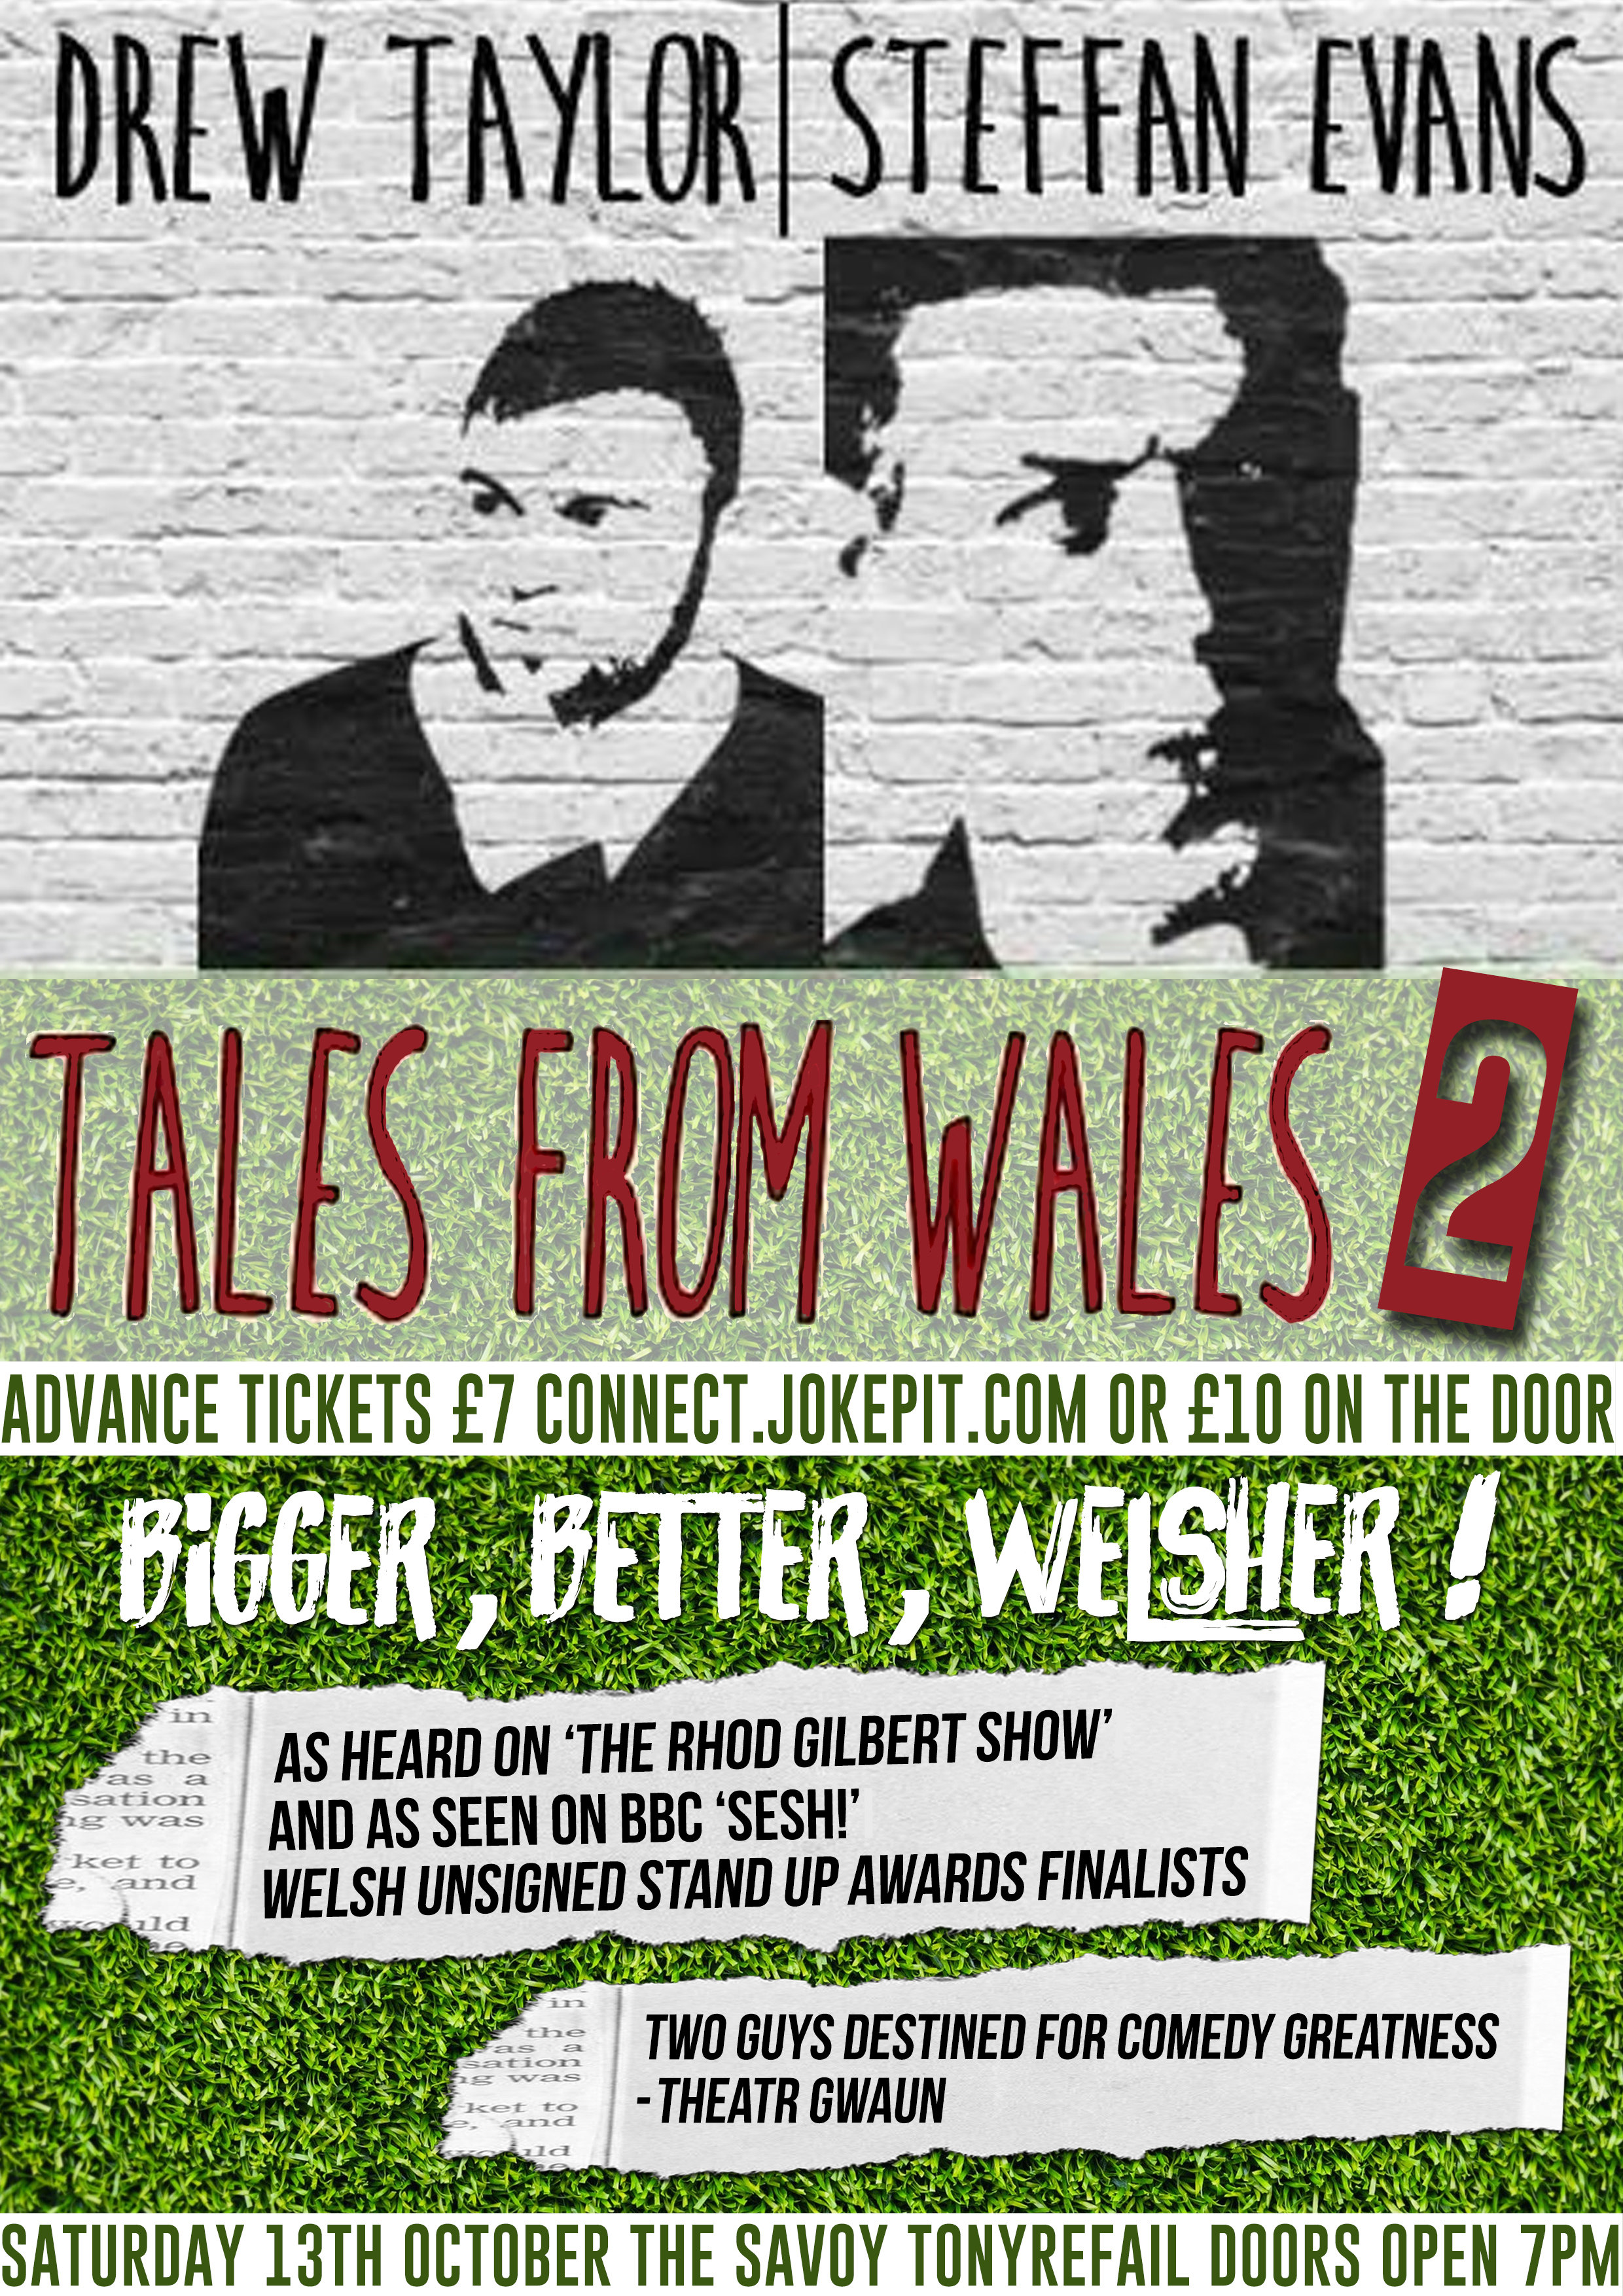 Tales from wales   the savoy  tonyrefail